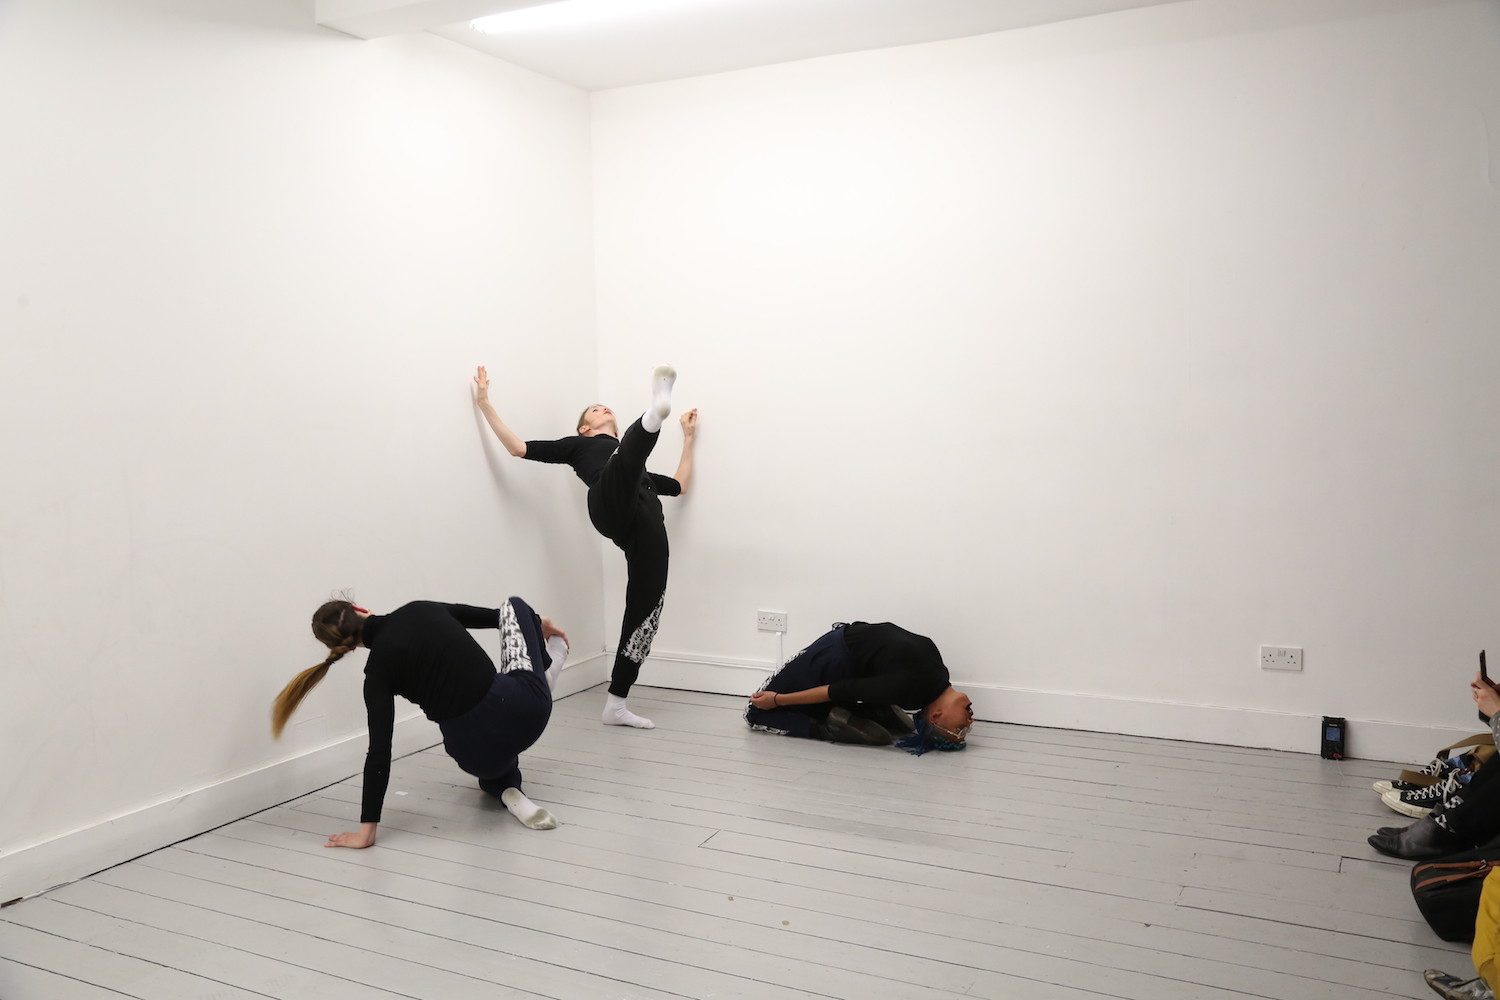 Nicole Bachmann, A circle whispering dot, 2019. Performance. Performed by Patricia Langa, Sonya Frances Cullingford and Legion Seven. Mimosa House, London, UK.